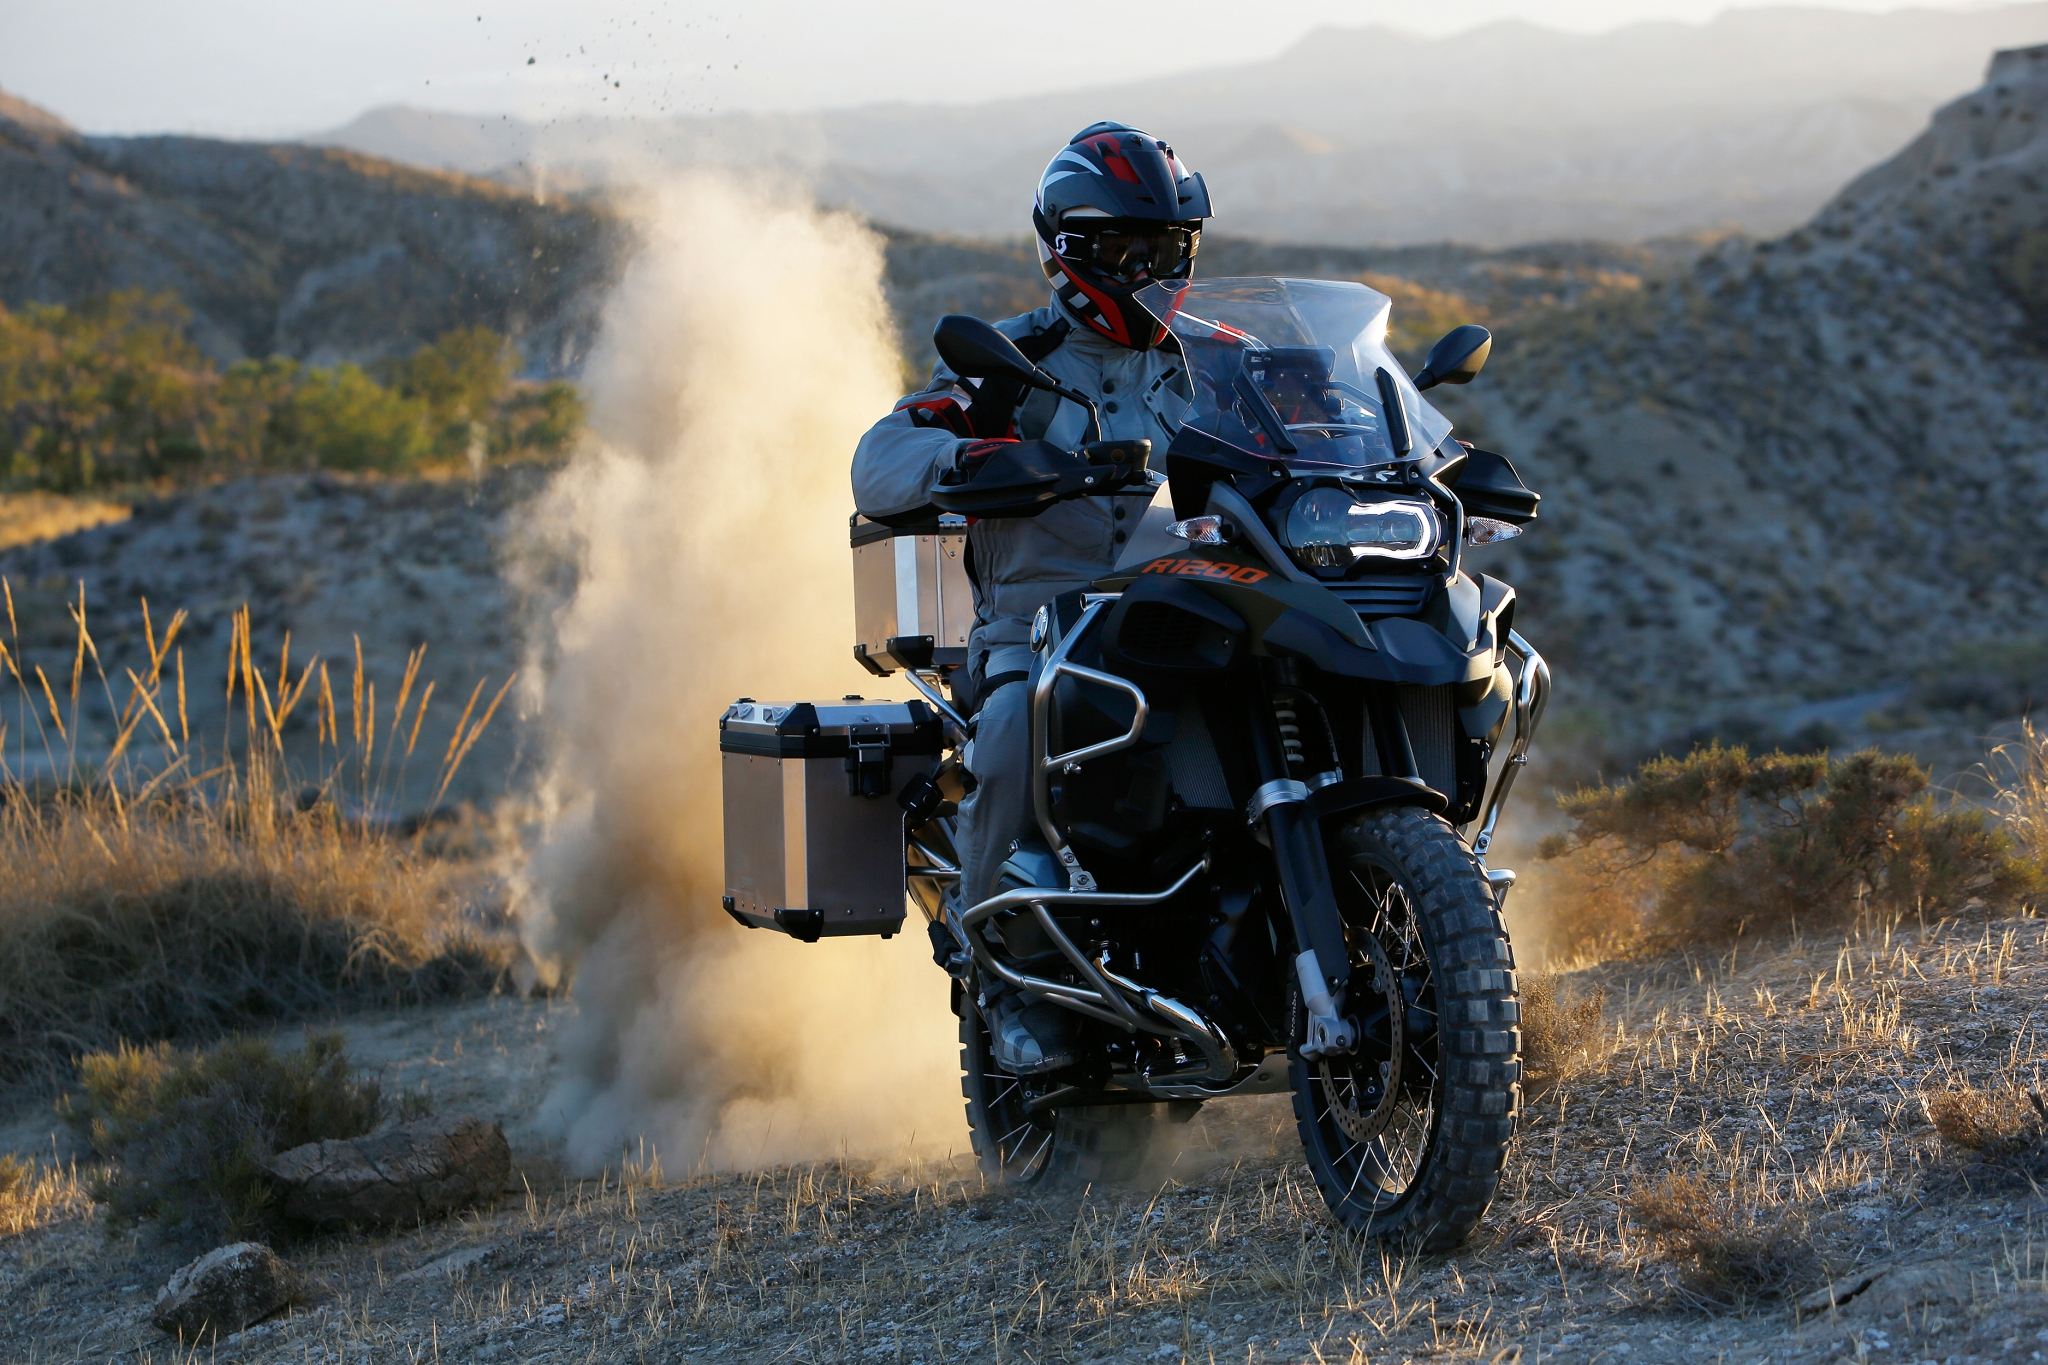 100 Pictures Of The 2014 Bmw R1200gs Adventure